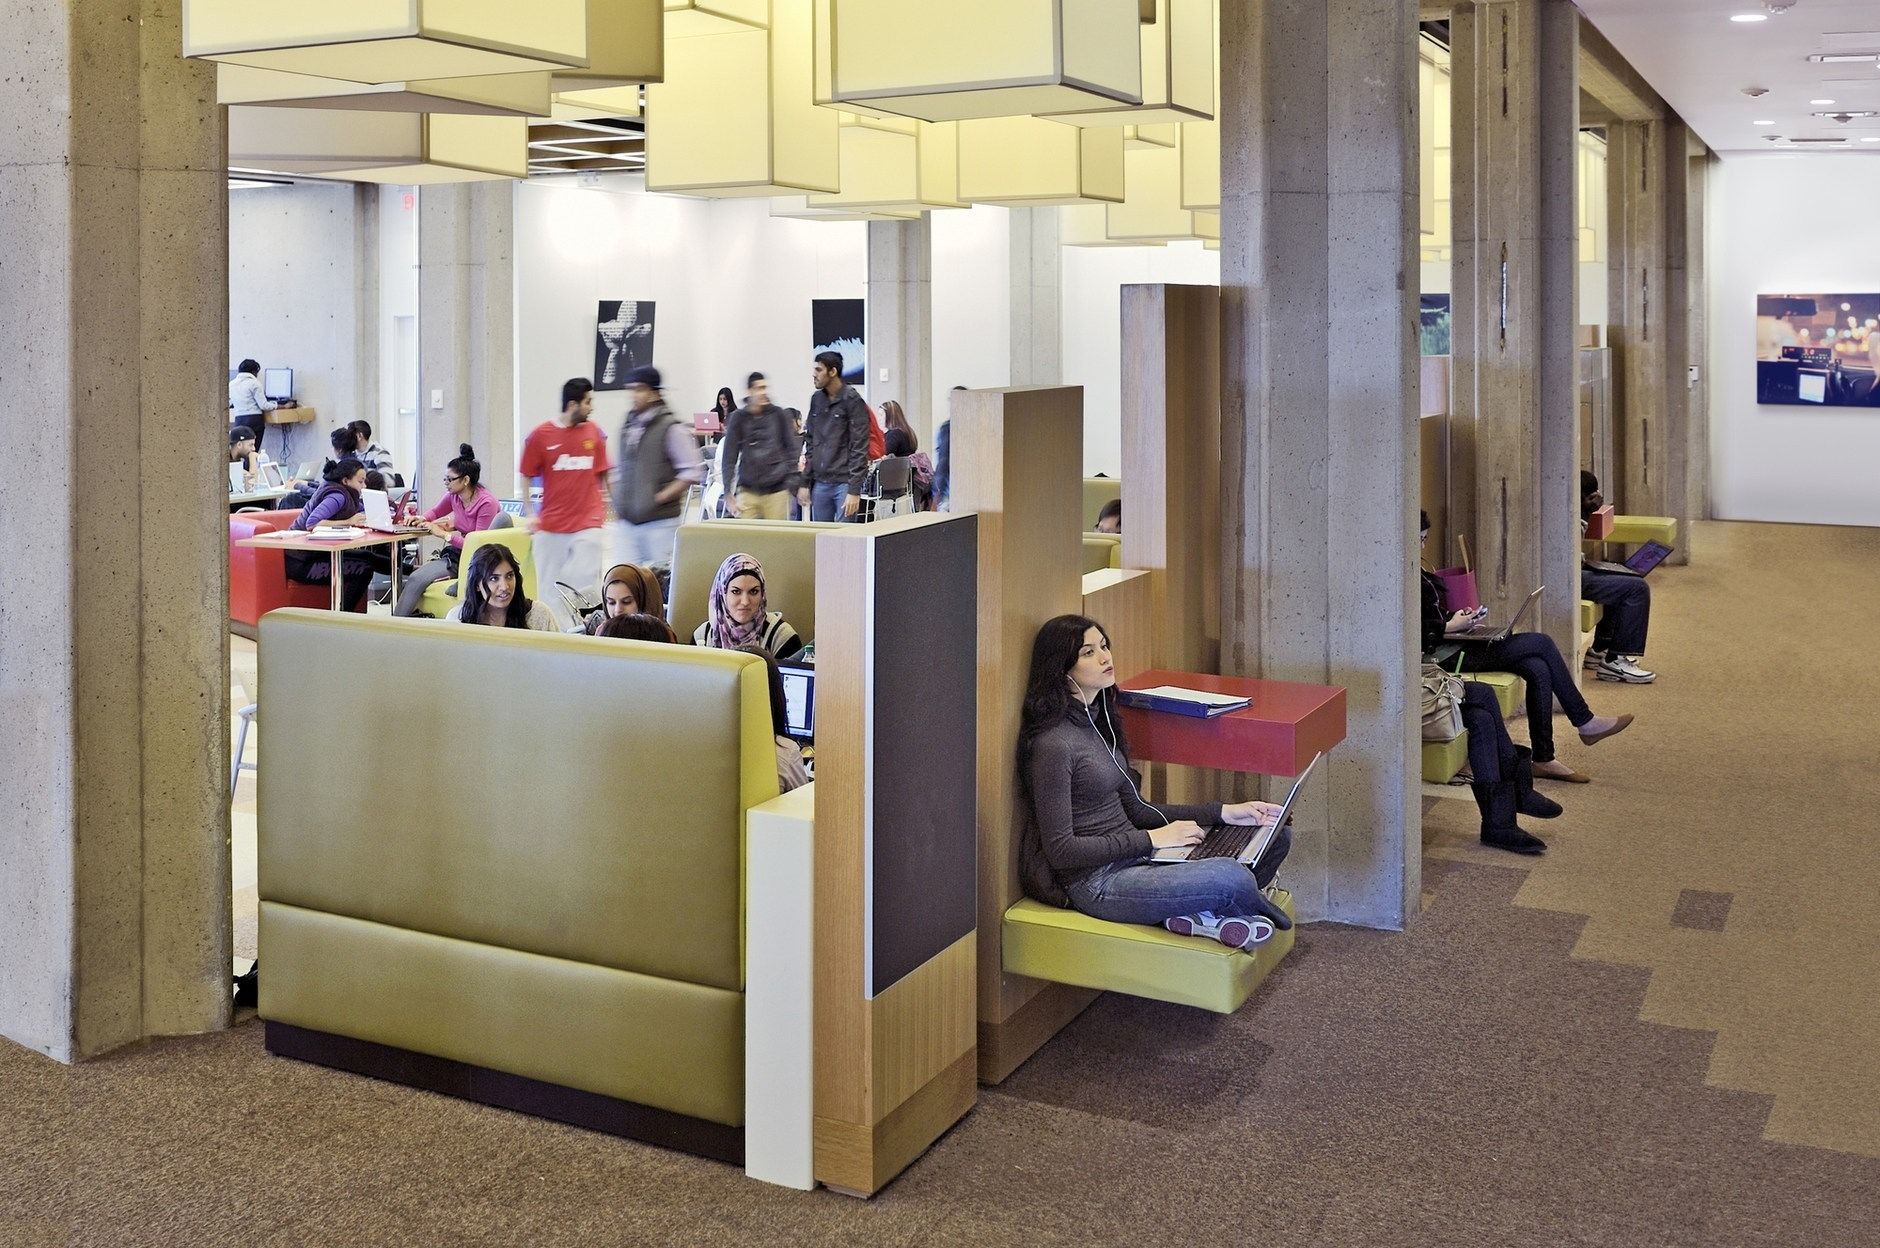 learning commons design Google Search Pinterest